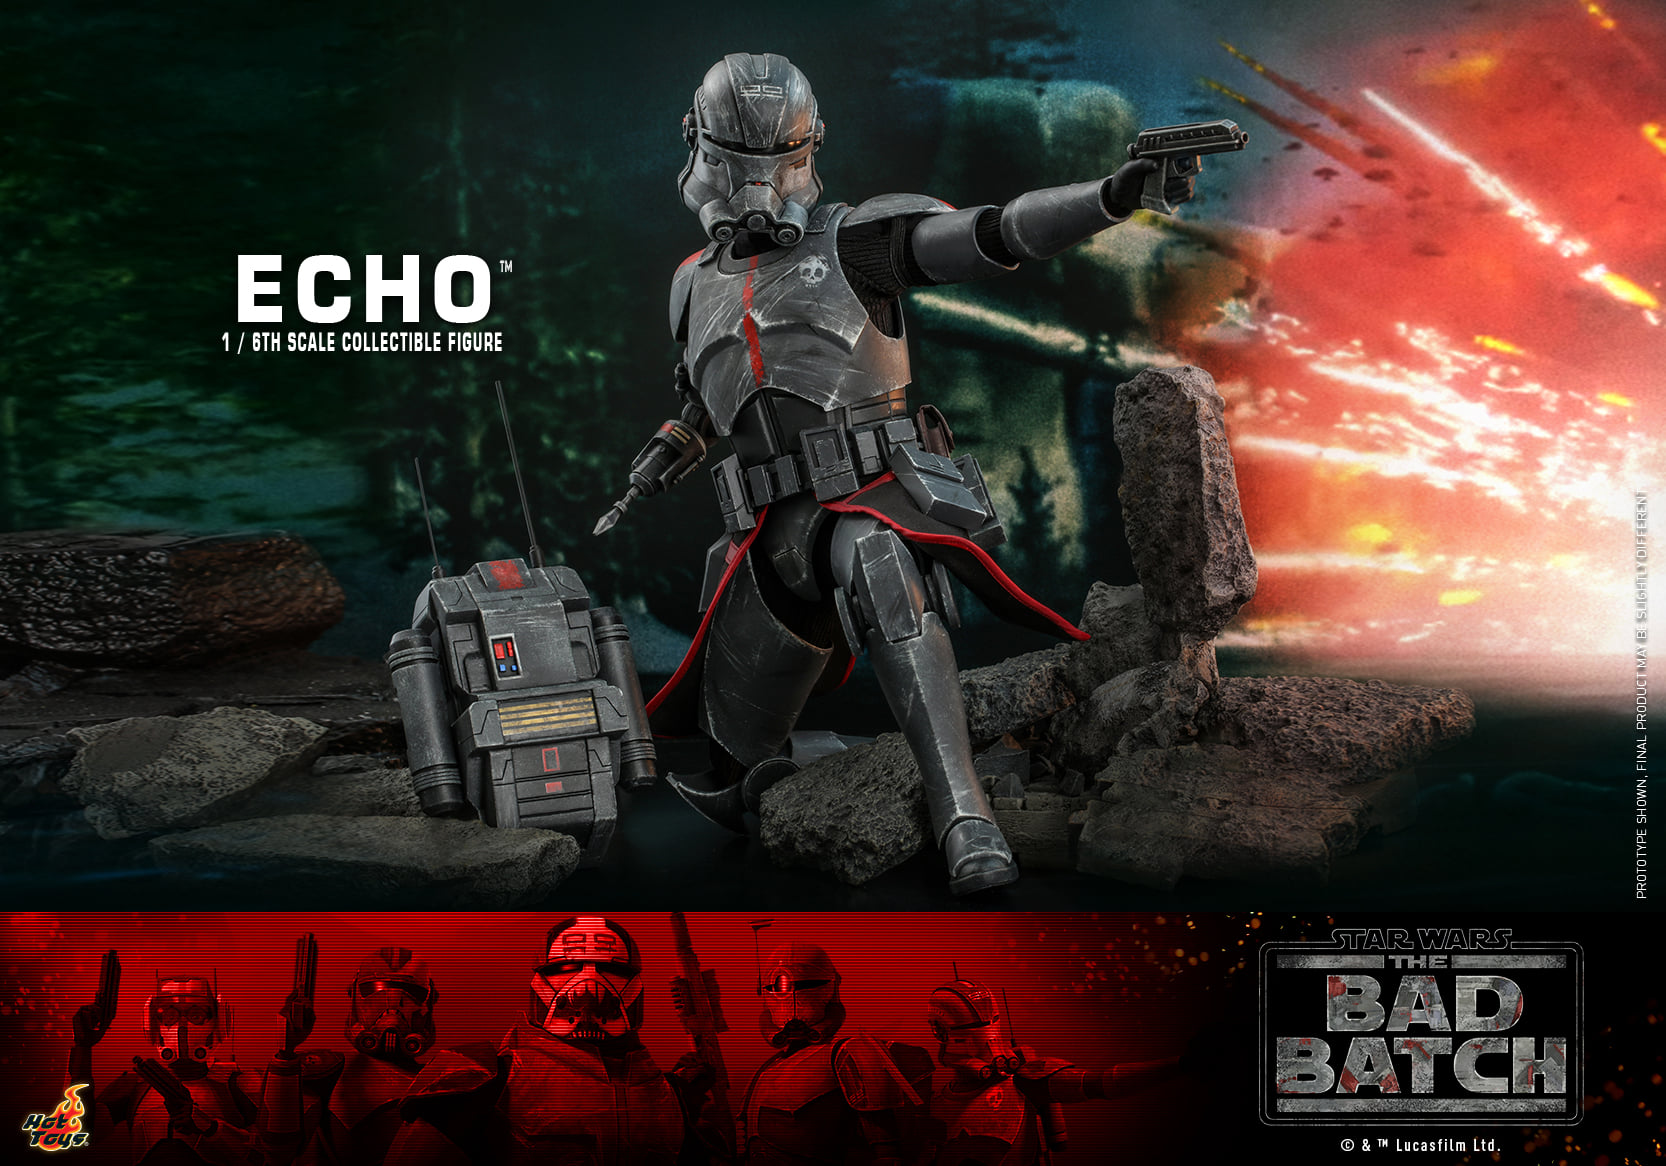 Pre-Order Hot Toys Star Wars Bad Batch Echo Sixth Scale Figure